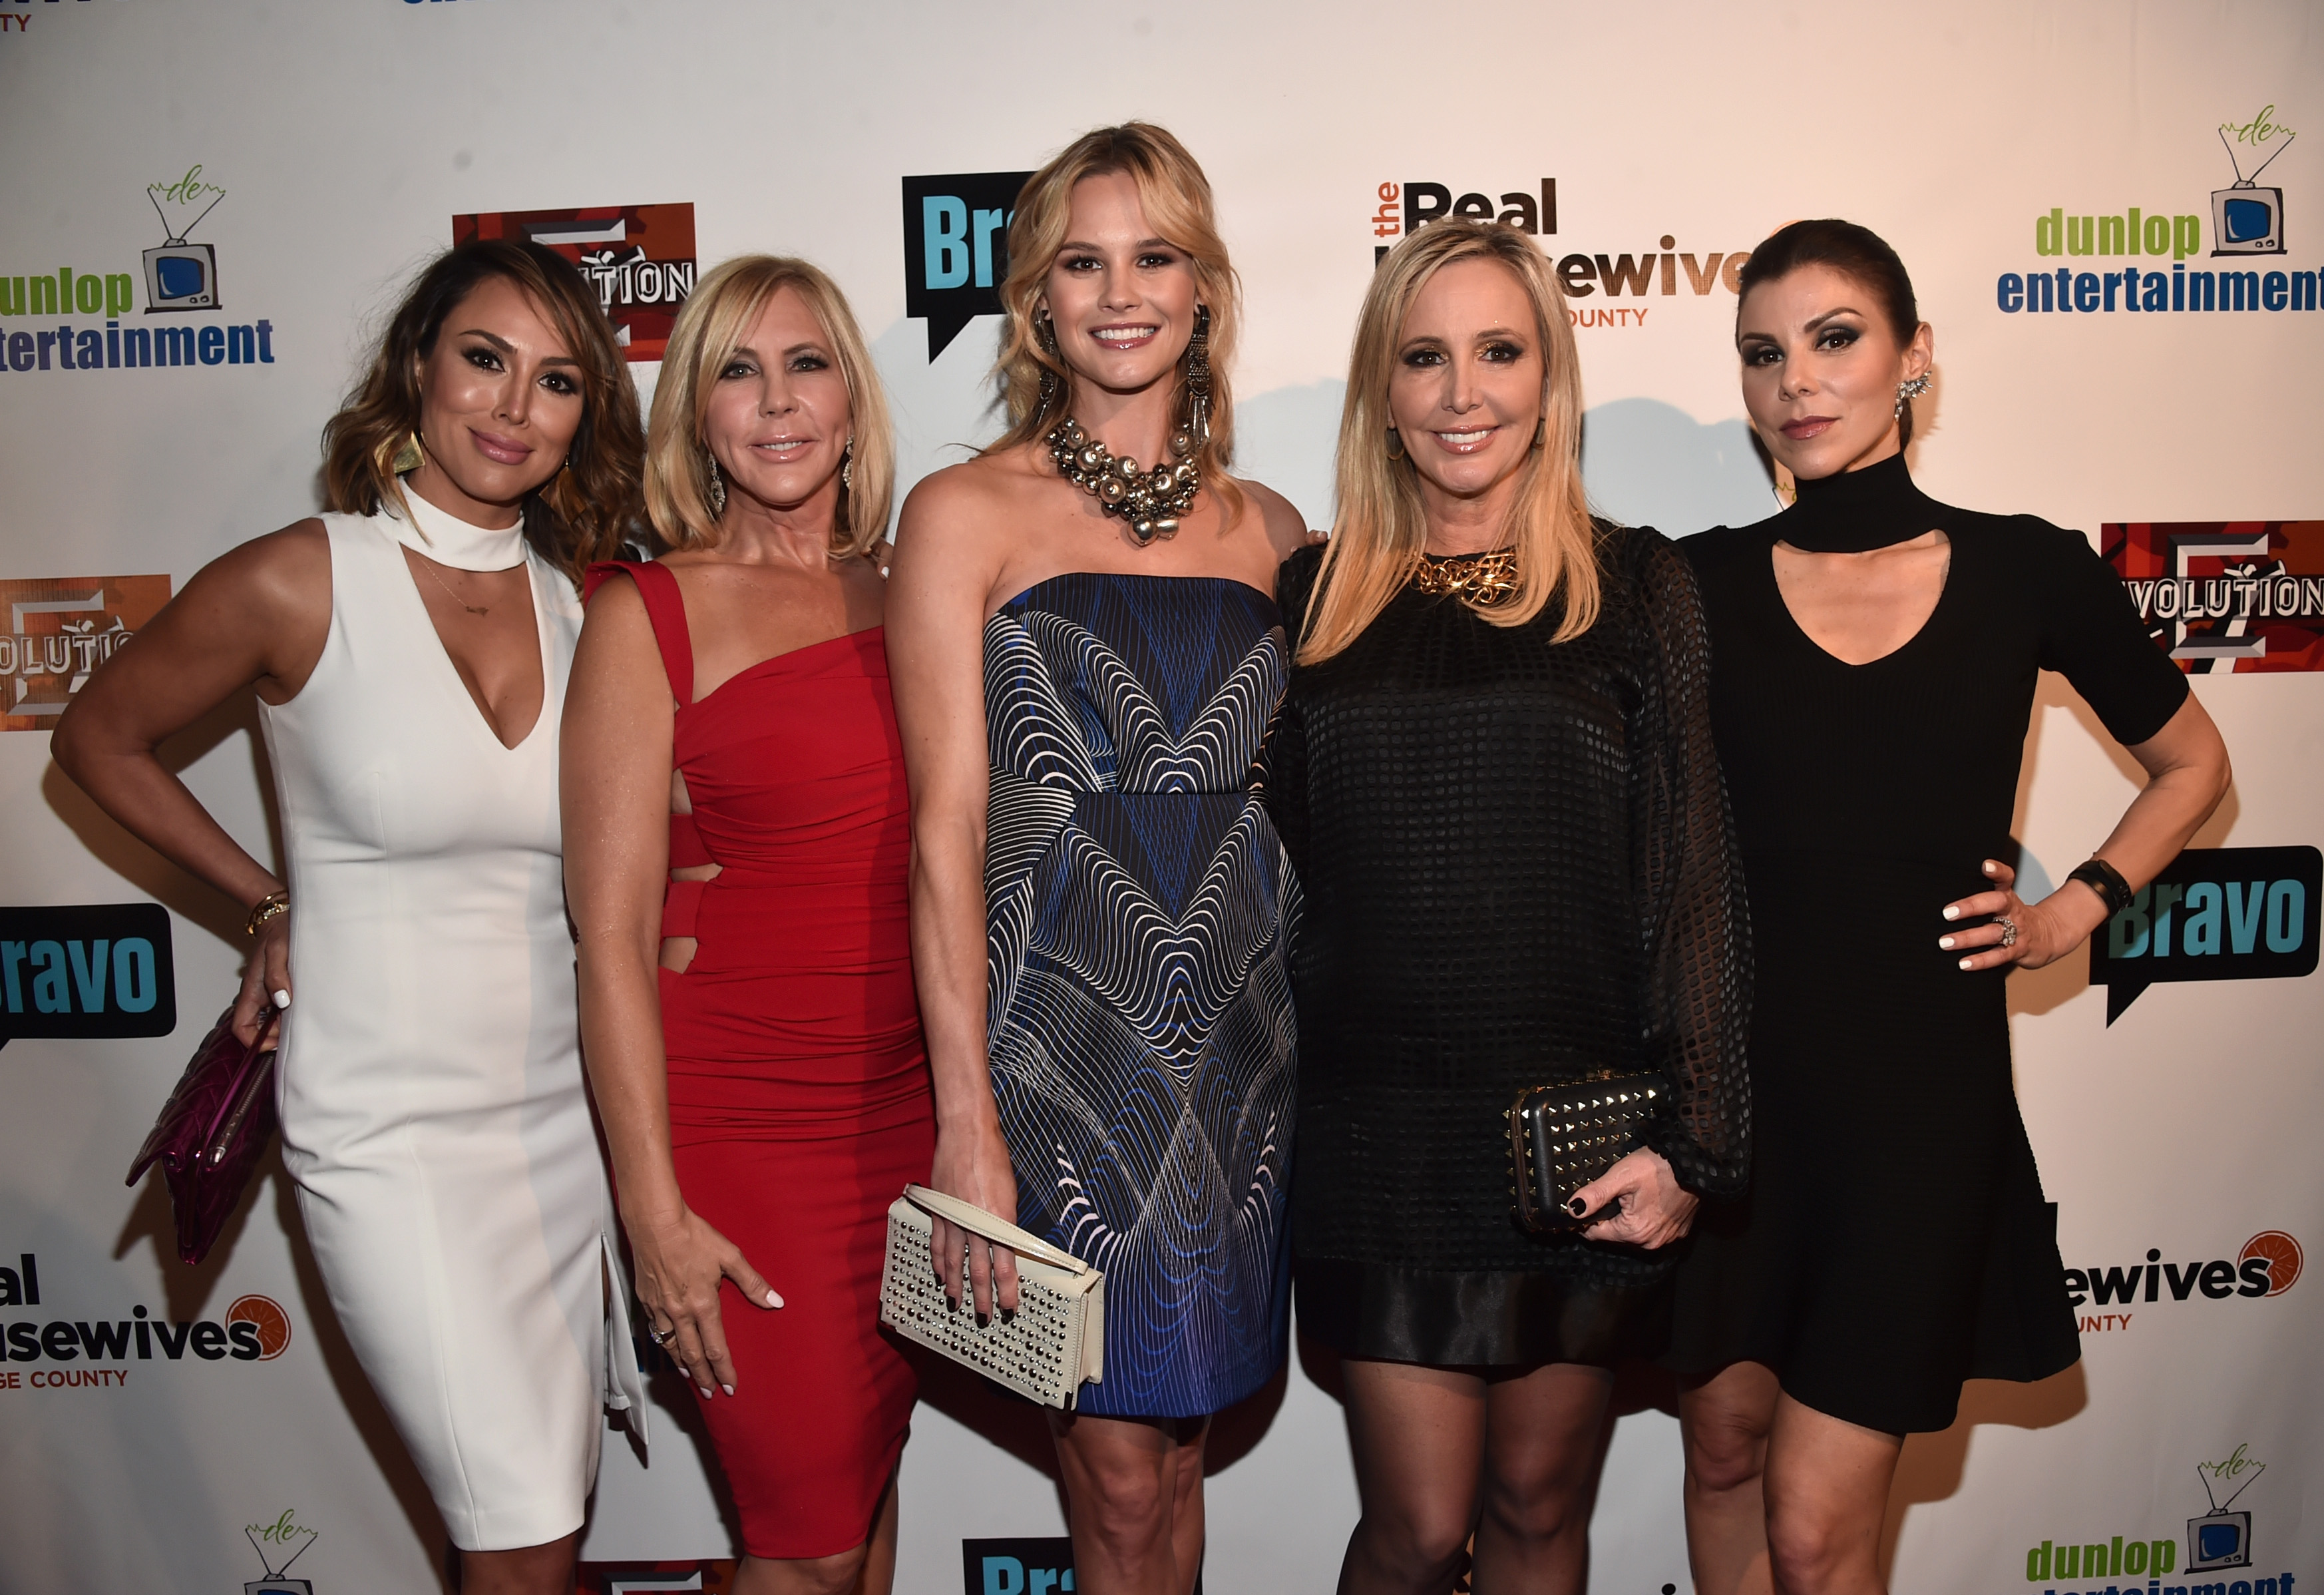 TV persoanlities Kelly Dodd, Vicki Gunvalson, Meghan King Edmonds, Shannon Beador and Heather Dubrow attend the premiere party for Bravo's 'The Real Housewives of Orange County' 10 year celebration at Boulevard3 on June 16, 2016 in Hollywood, California.